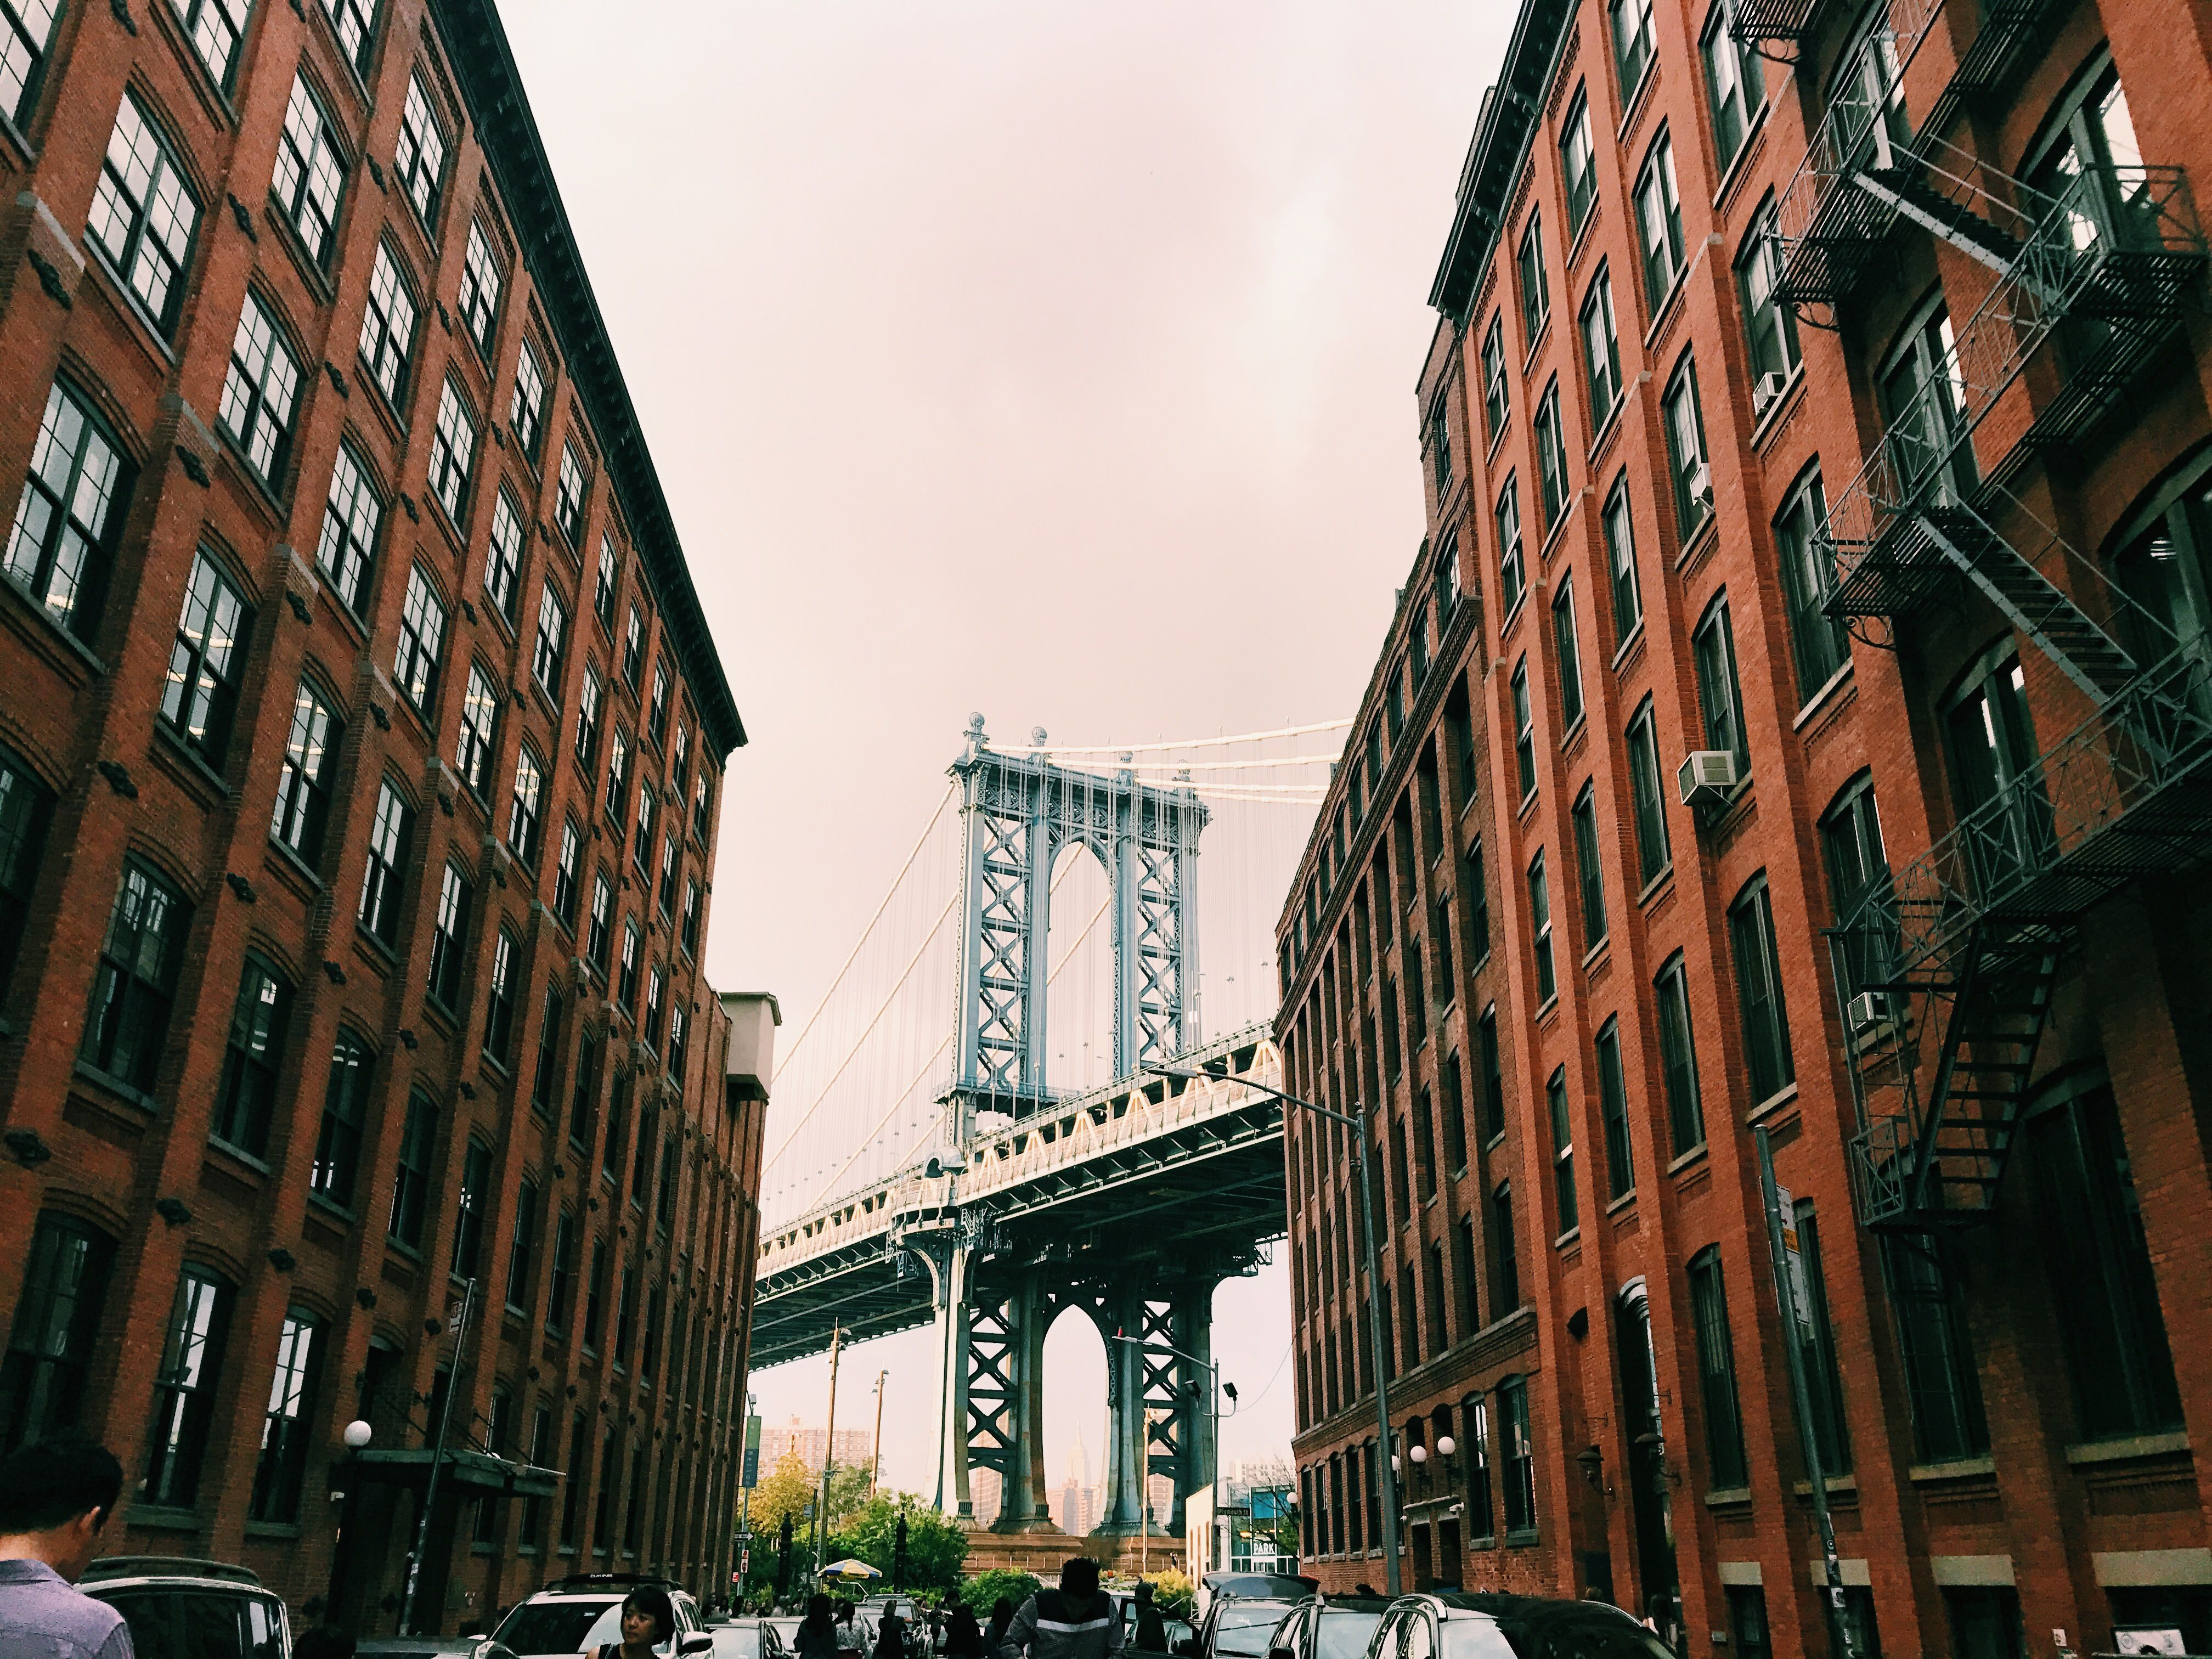 In Dumbo #Newyork #Photography #Brooklyn #Nyc #Citylife #Landscape #Architecture